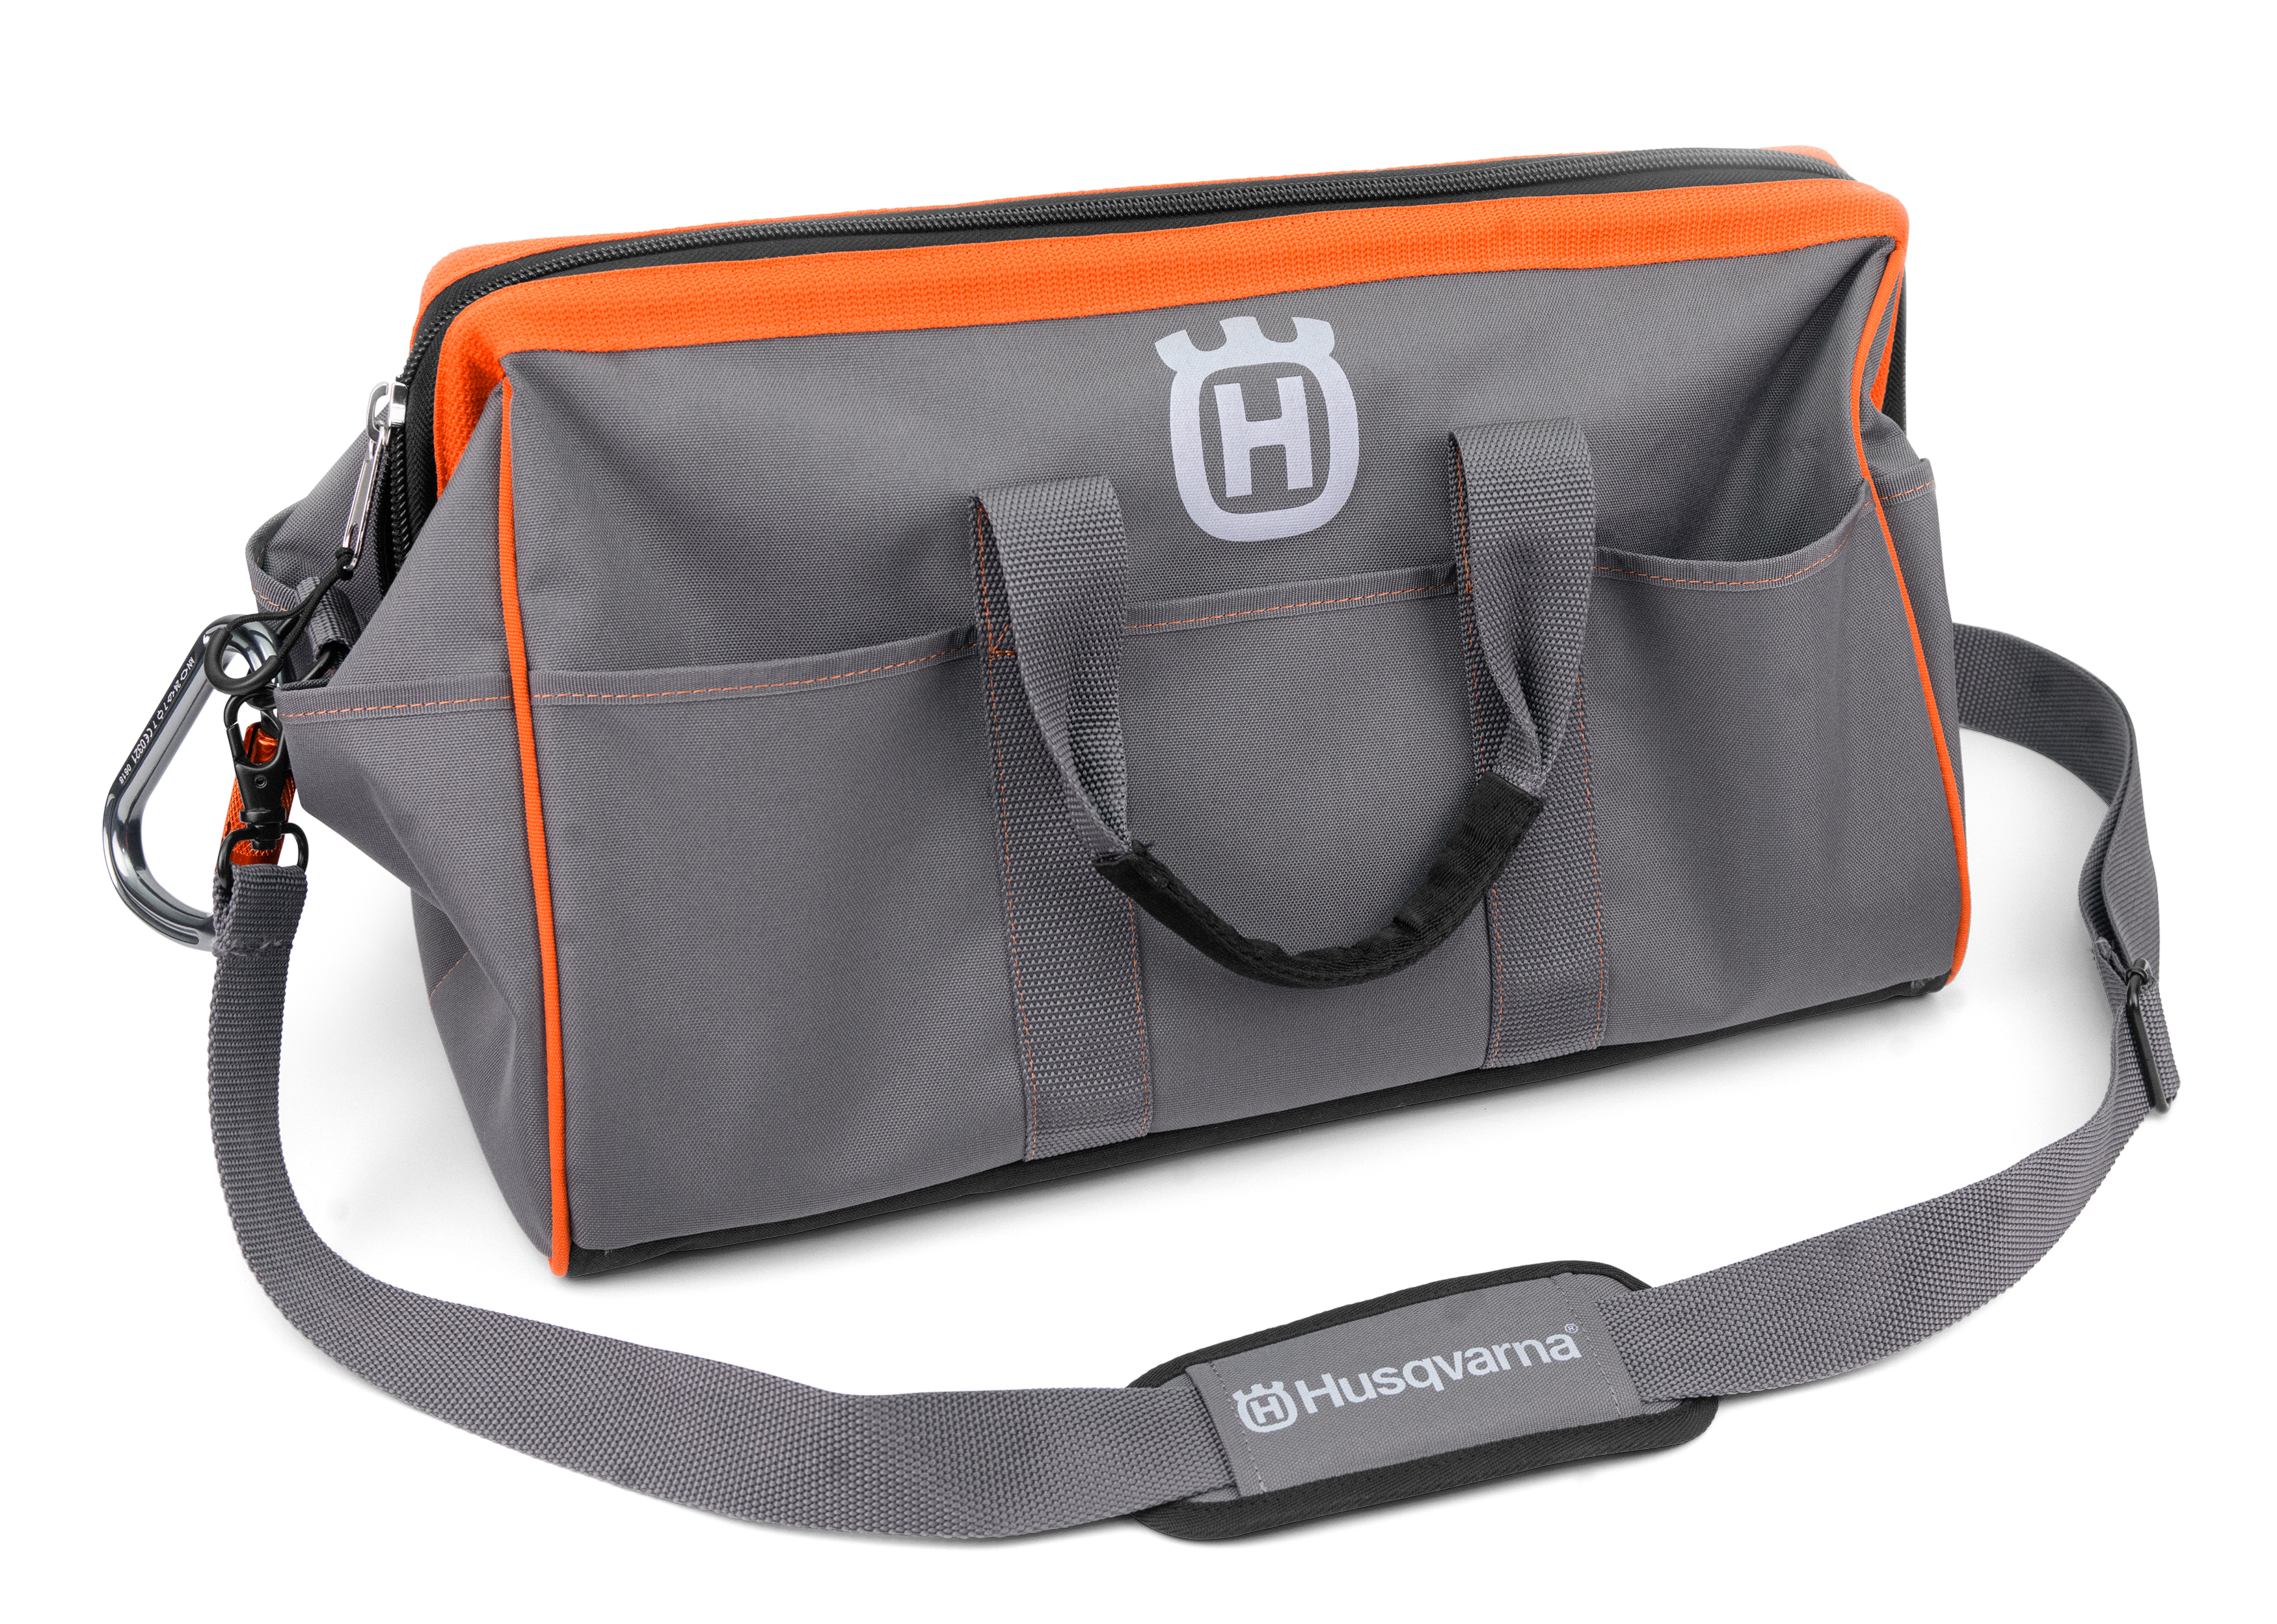 Image for Tool bag                                                                                                                         from HusqvarnaB2C